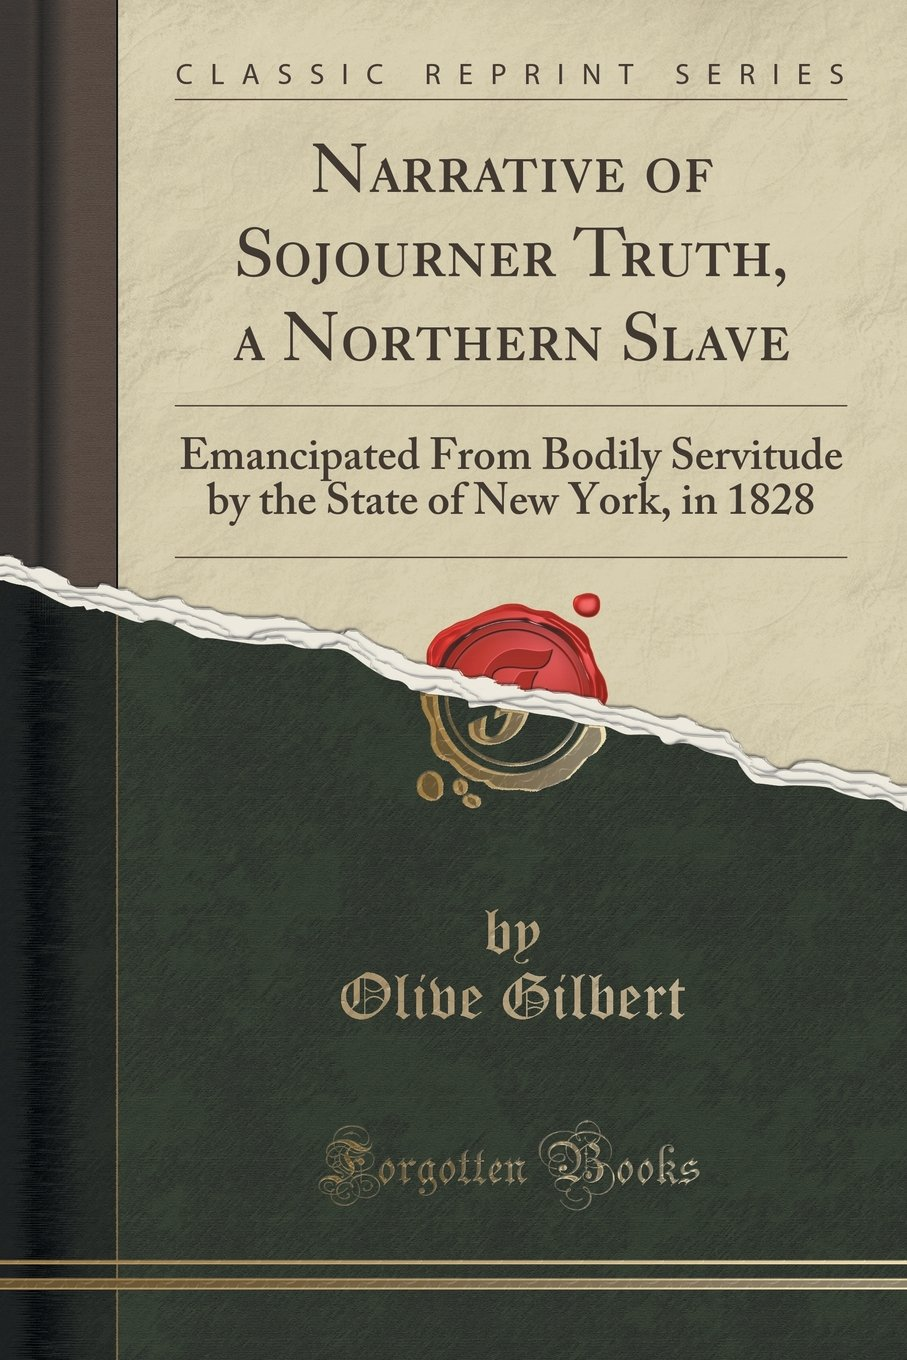 Narrative of Sojourner Truth, a Northern Slave: Emancipated From Bodily Servitude by the State of New York, in 1828 (Classic Reprint)